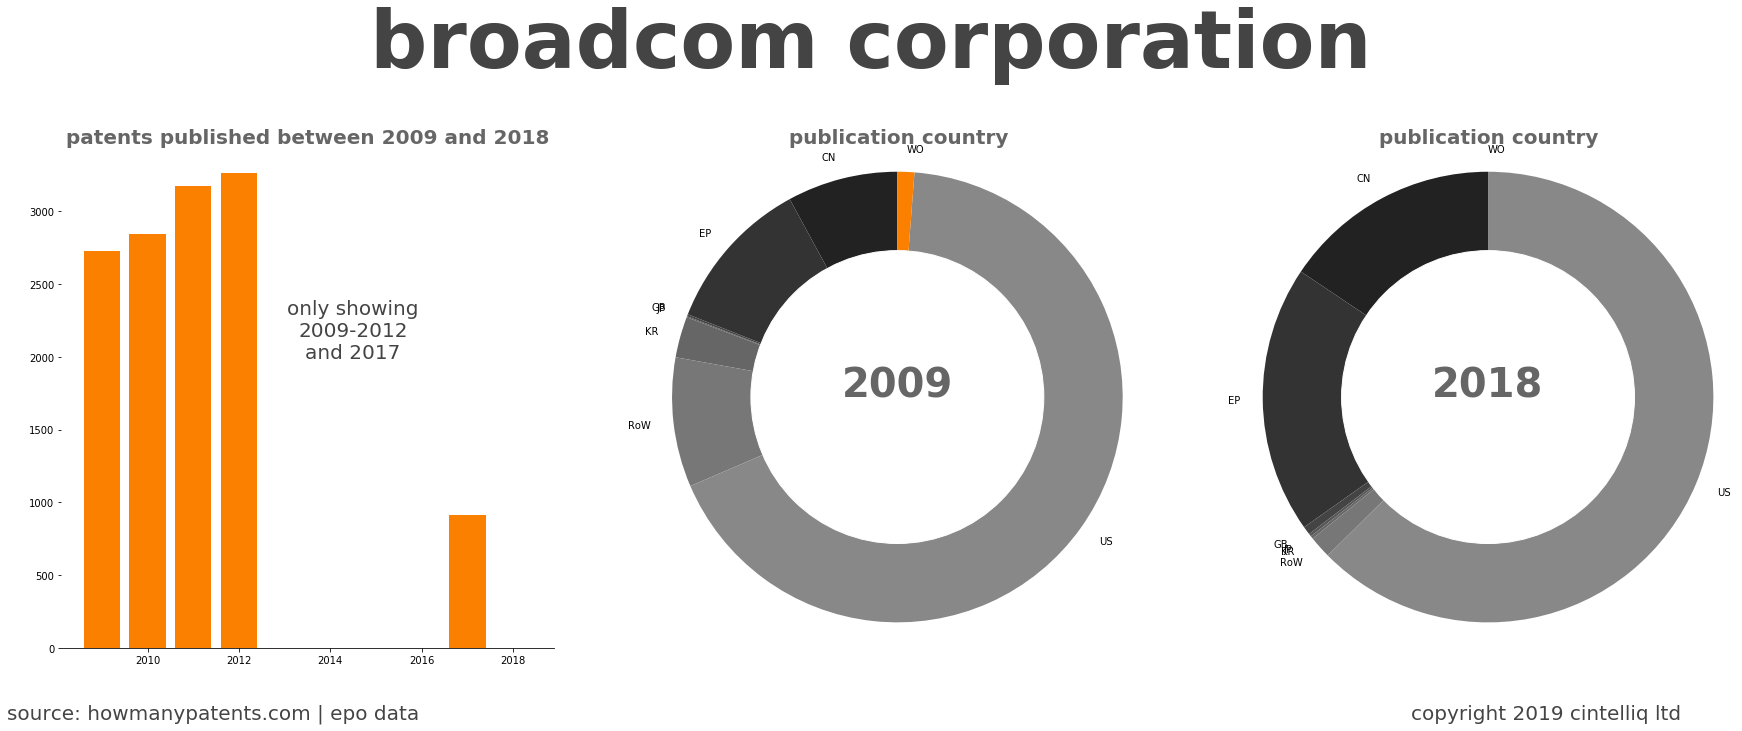 summary of patents for Broadcom Corporation